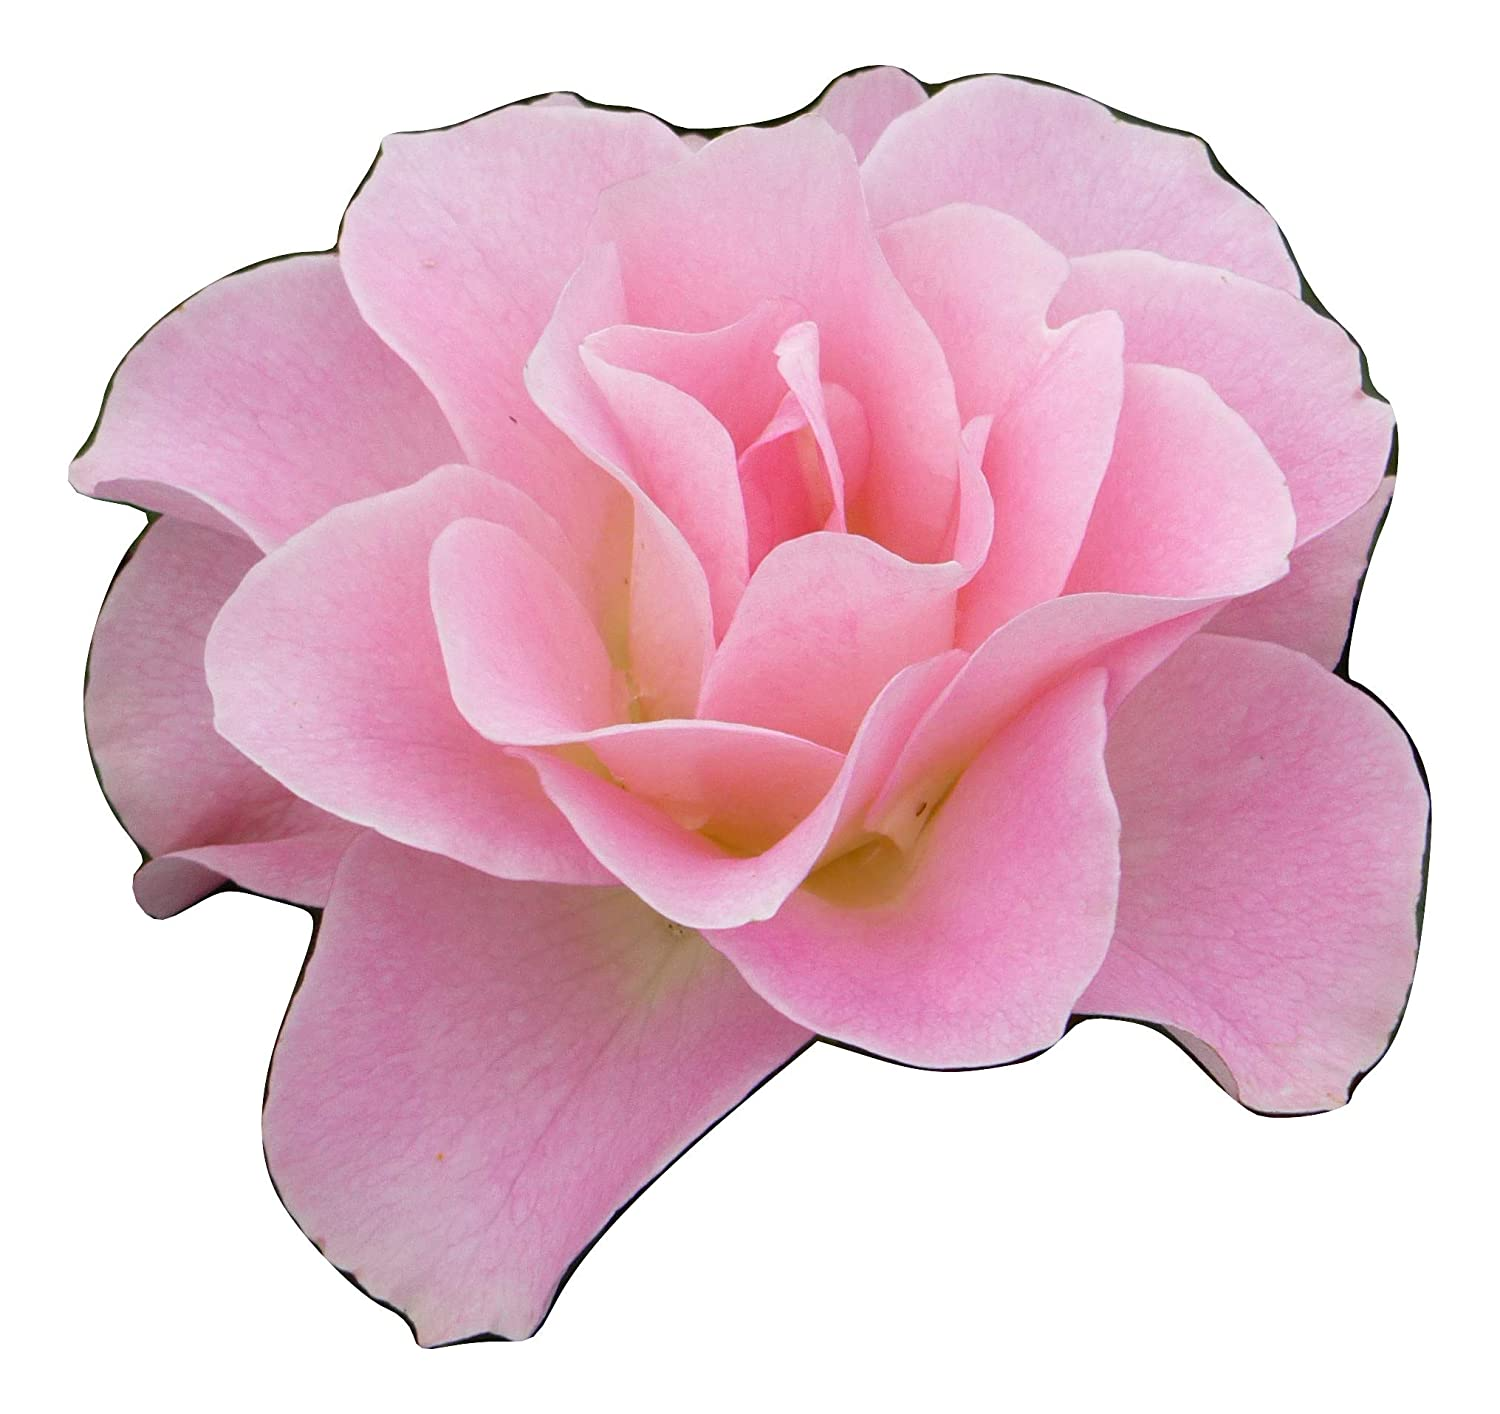 ROSE JENNY'S ROSE-Superb Personalised Plant & Flower Gifts For Birthdays & All Occasions Giftaplant Ref: ROSJROS9